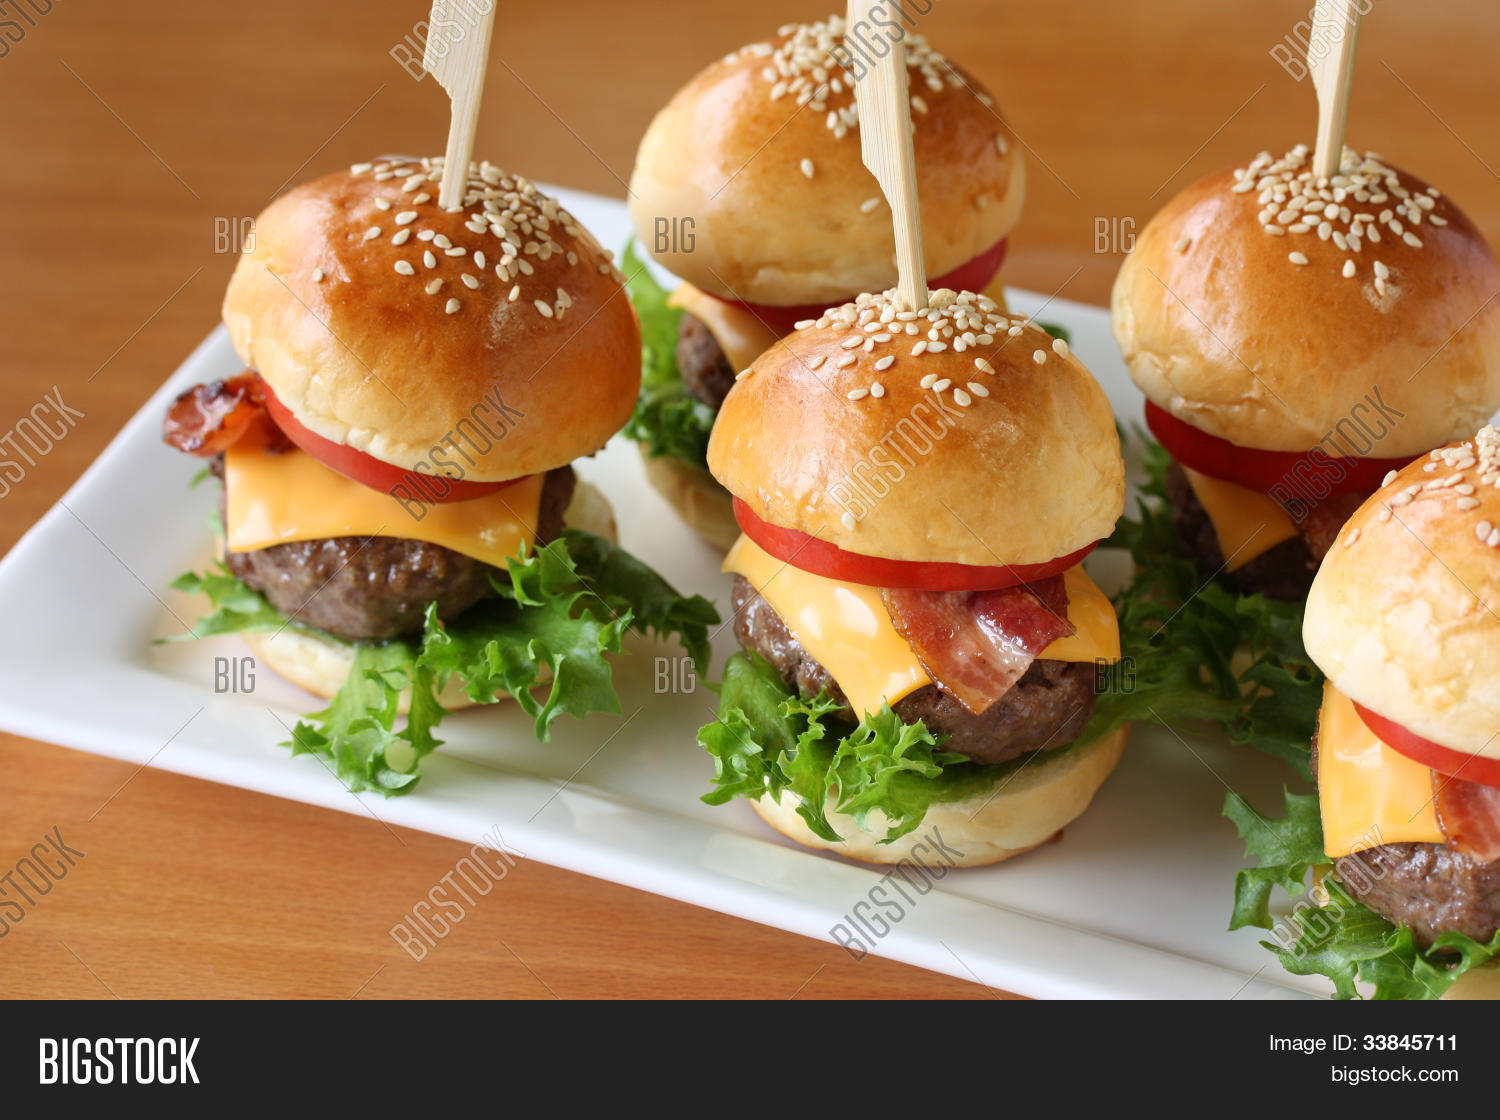 mini hamburgers mini burgers image photo bigstock. Black Bedroom Furniture Sets. Home Design Ideas